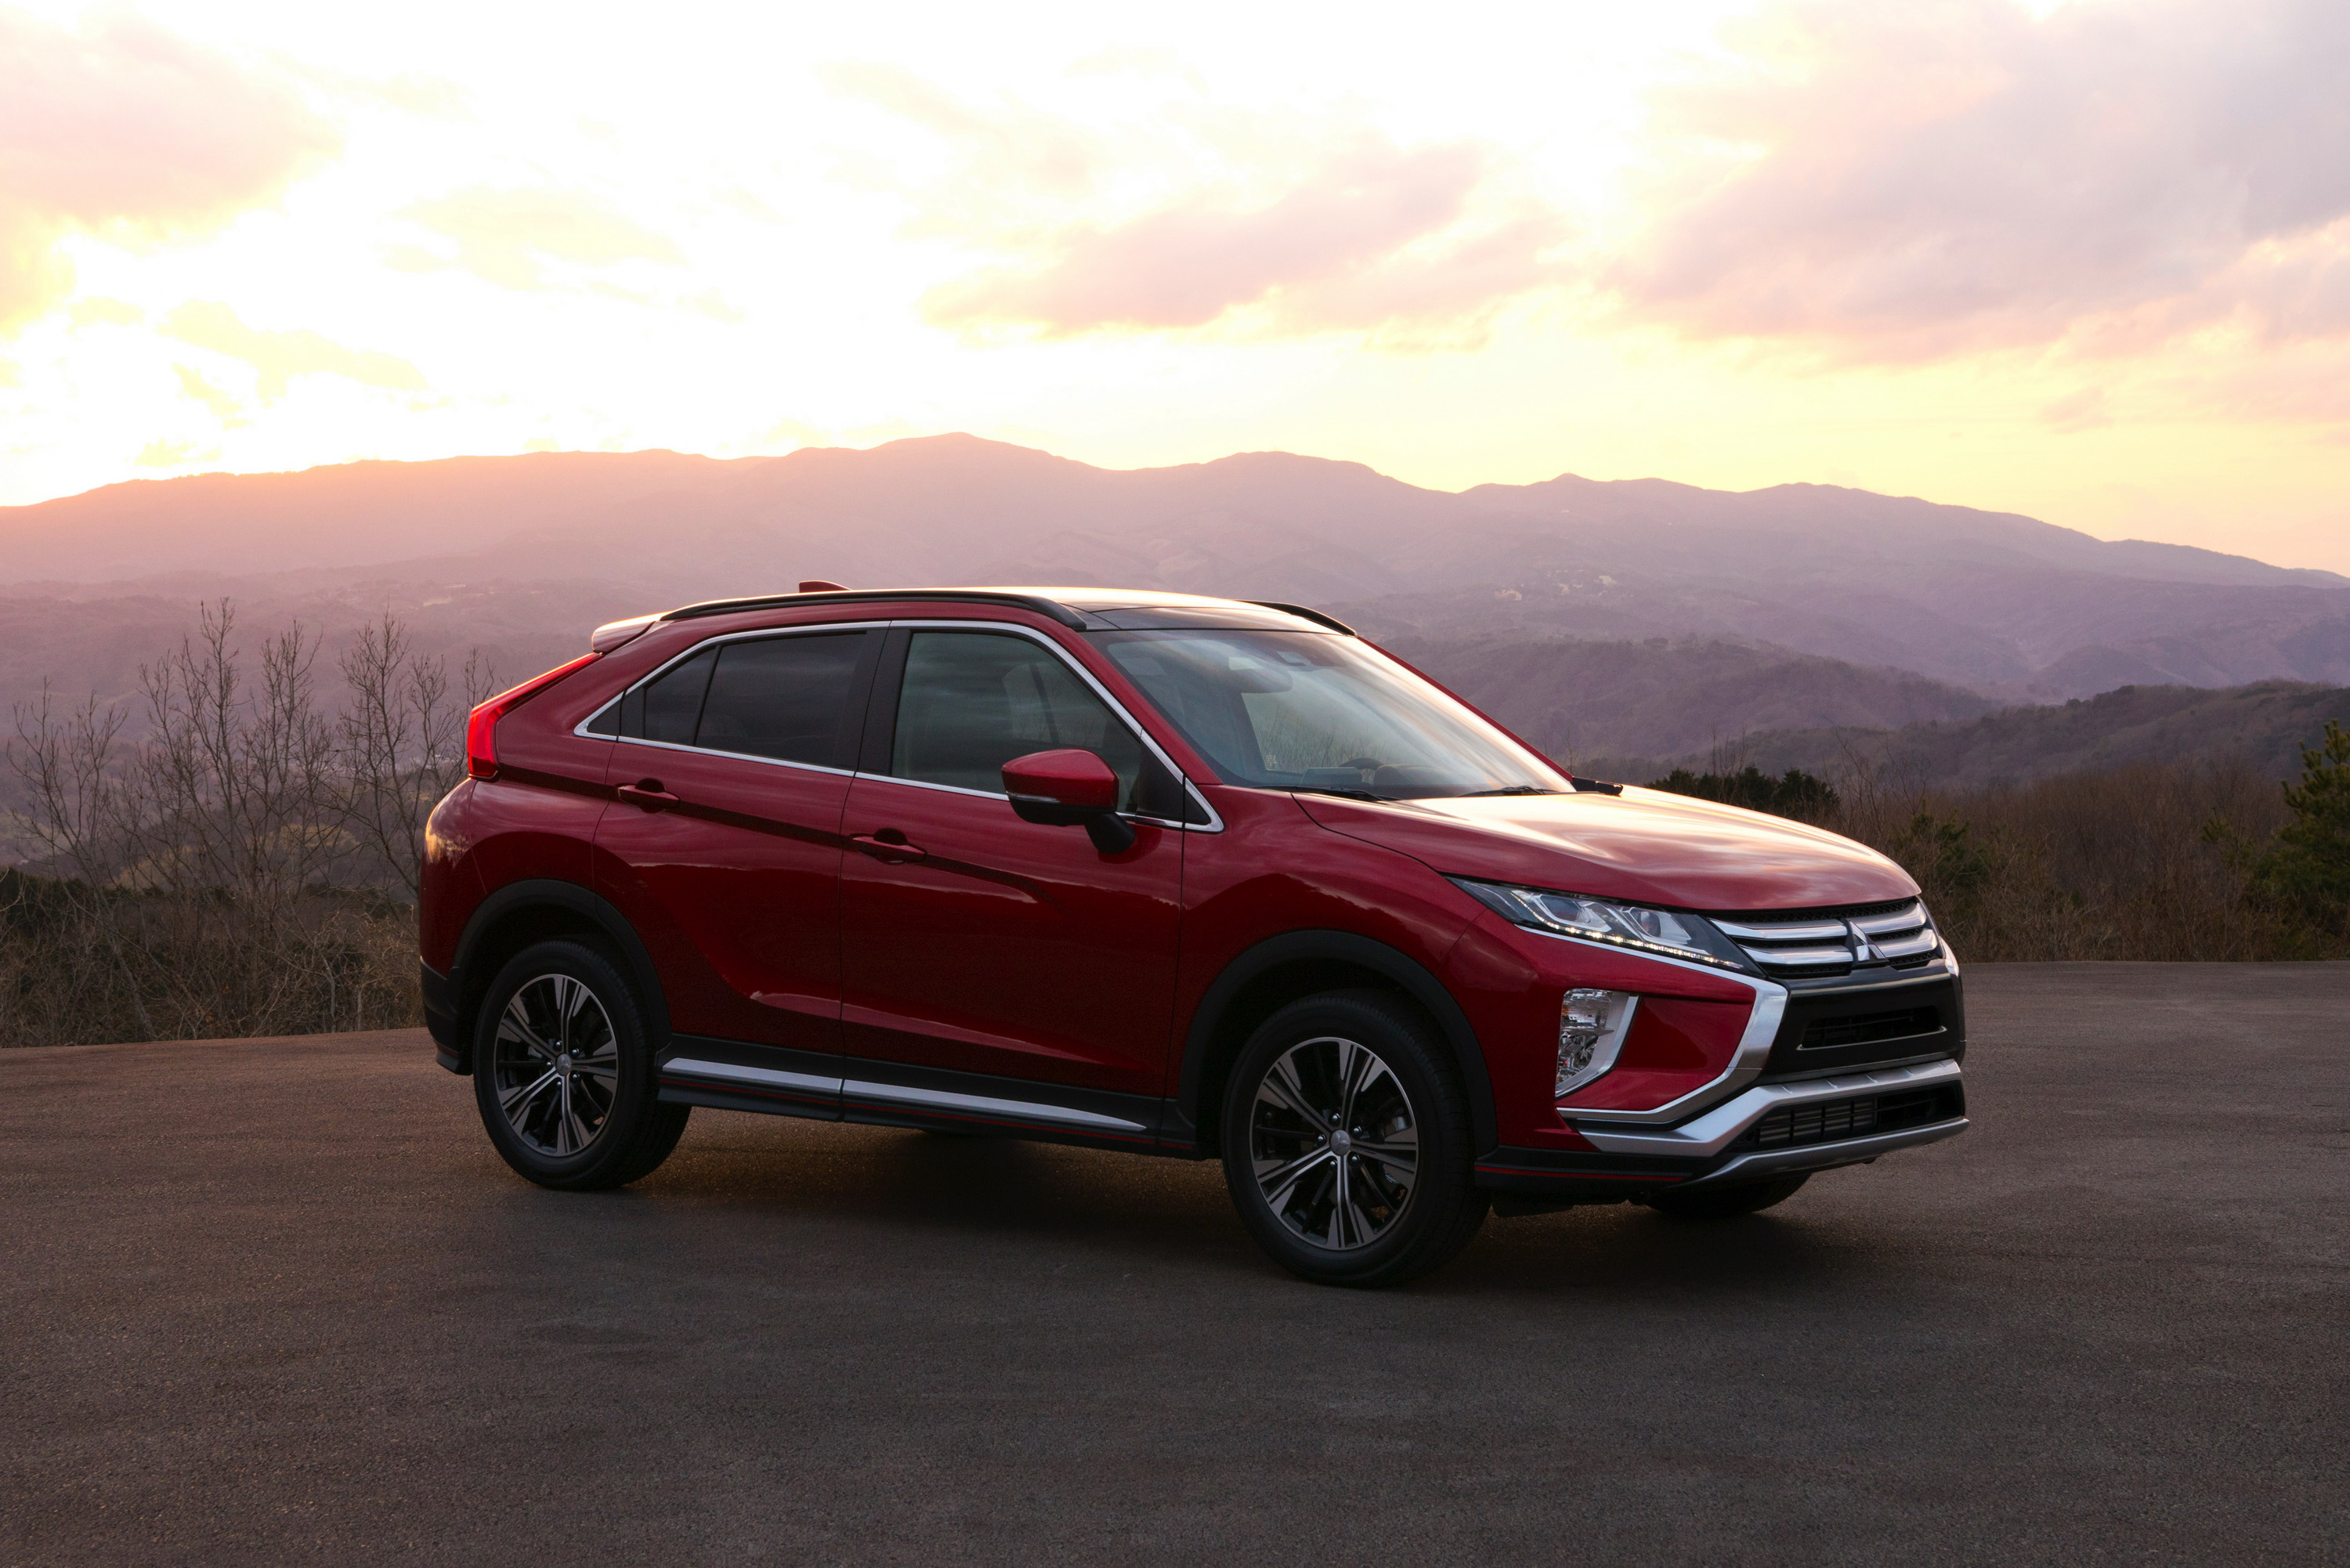 asx lifestyle cars essentials reviews mitsubishi inews car review crossover